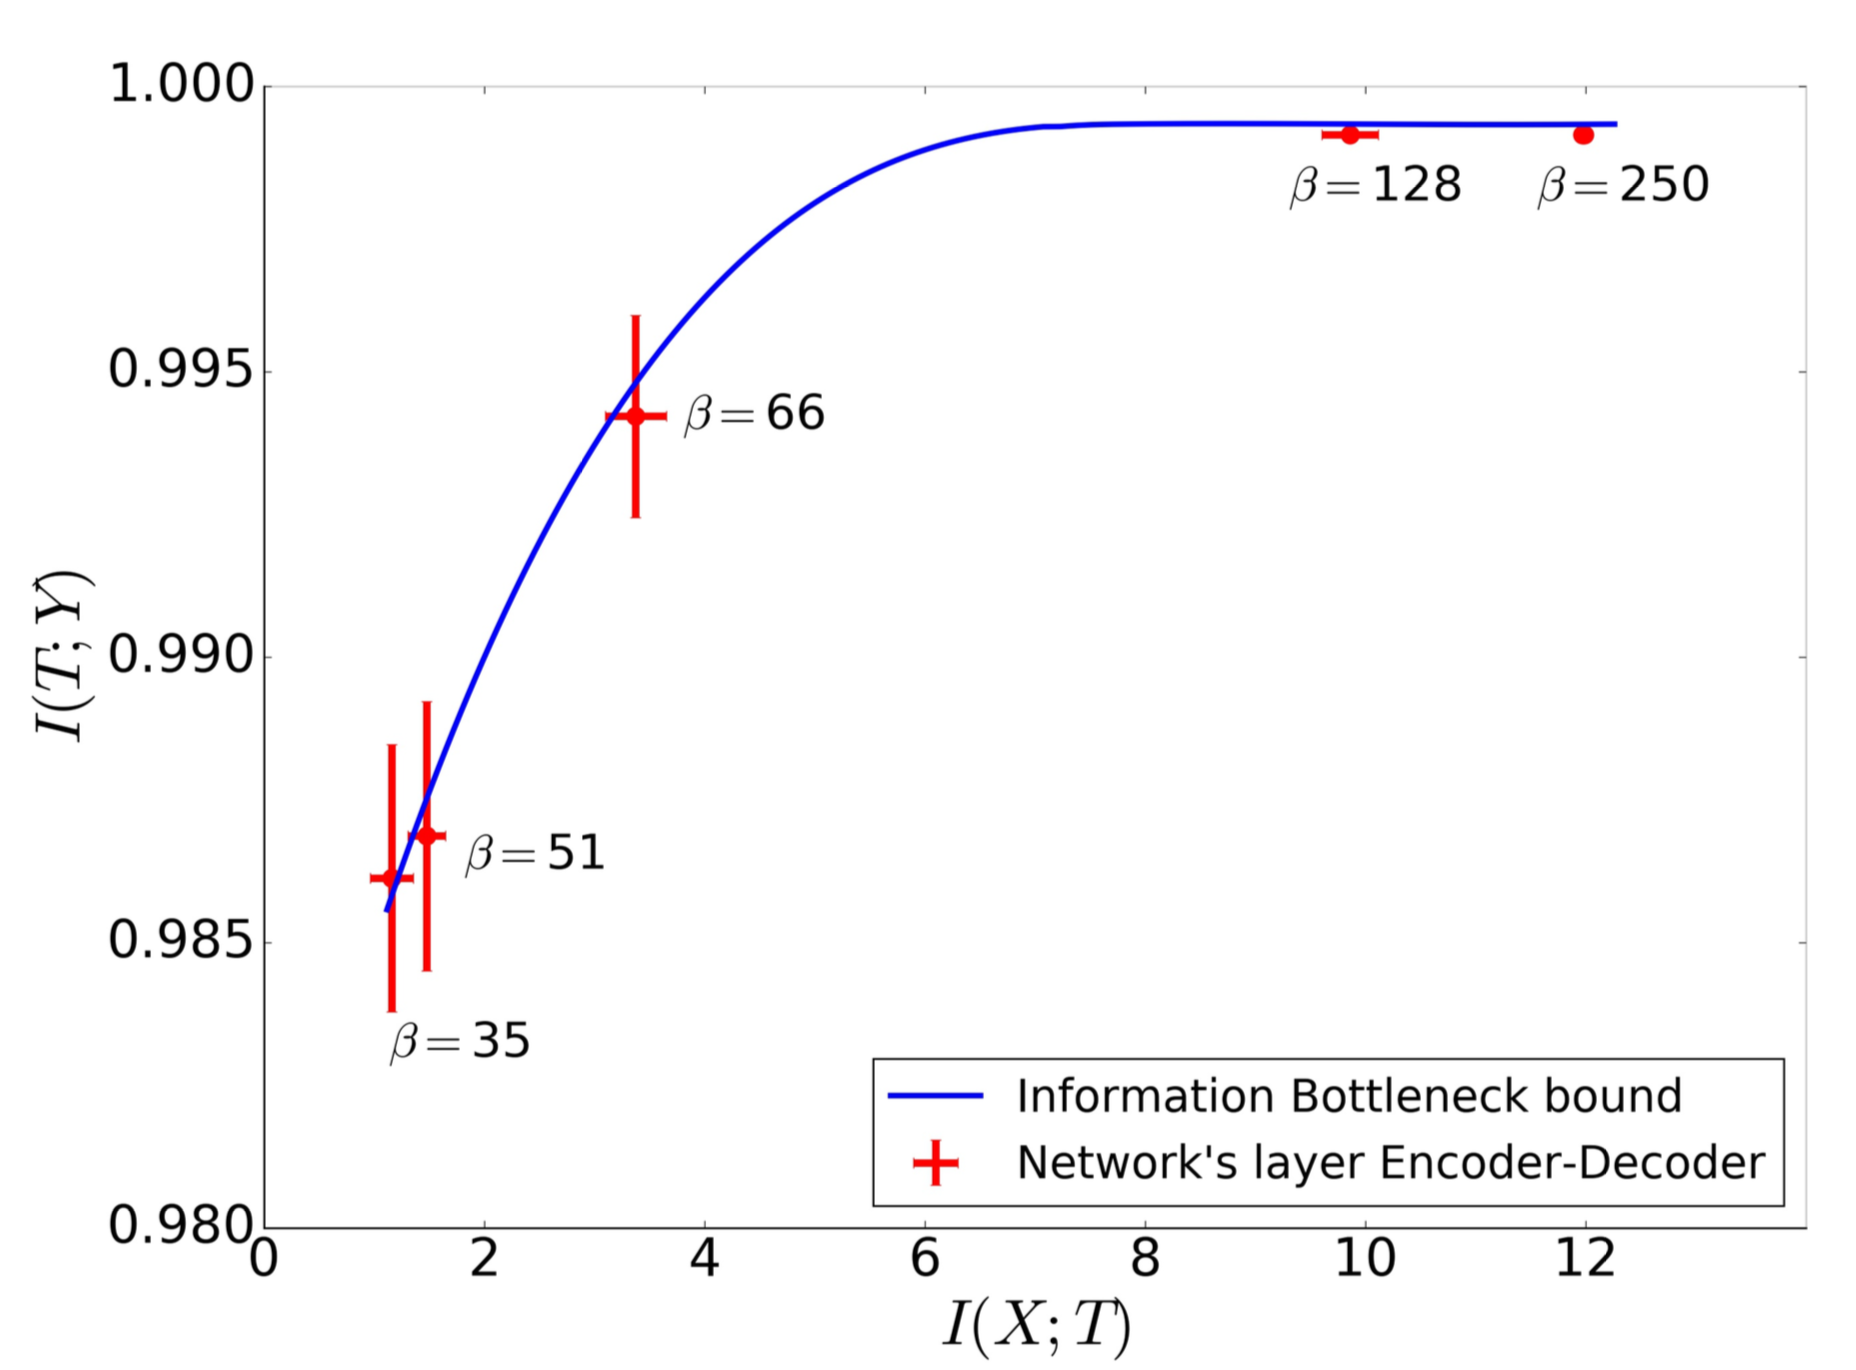 Convergence of layers to the IB bound